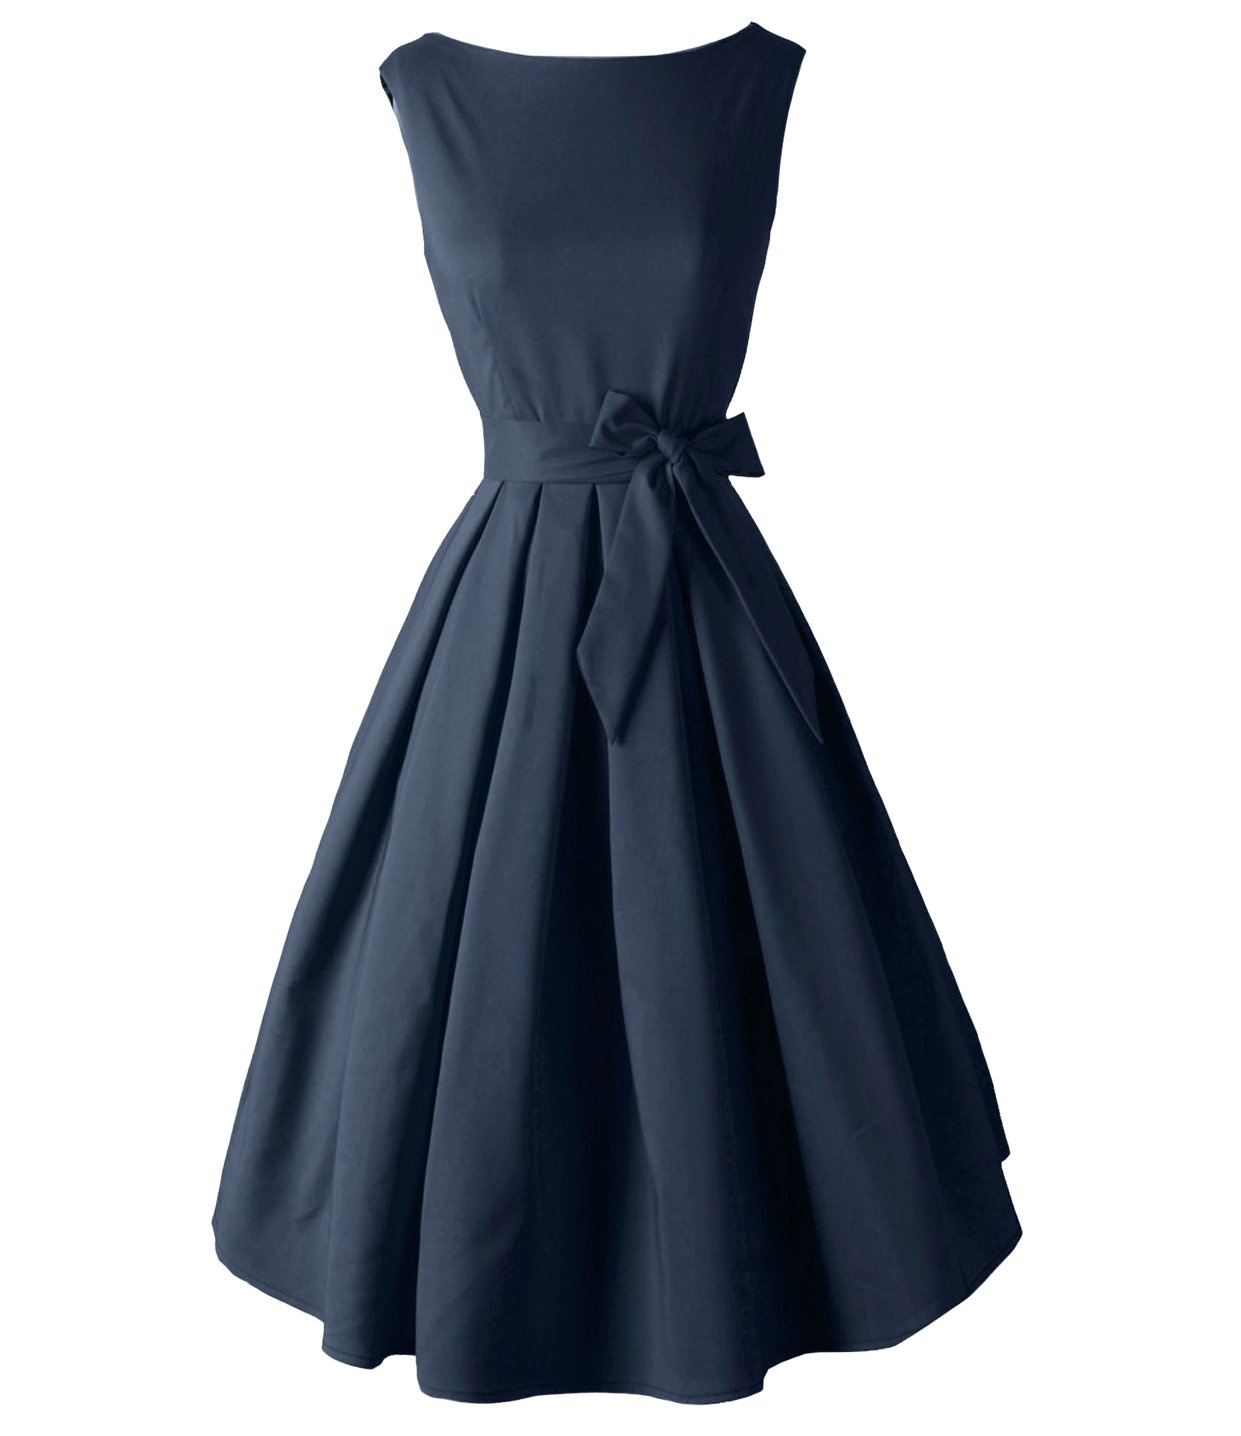 Available at Amazon: DAROJ Vintage Audrey Hurpburn 1950s Style Boat Neck Cocktail Party Swing Dress